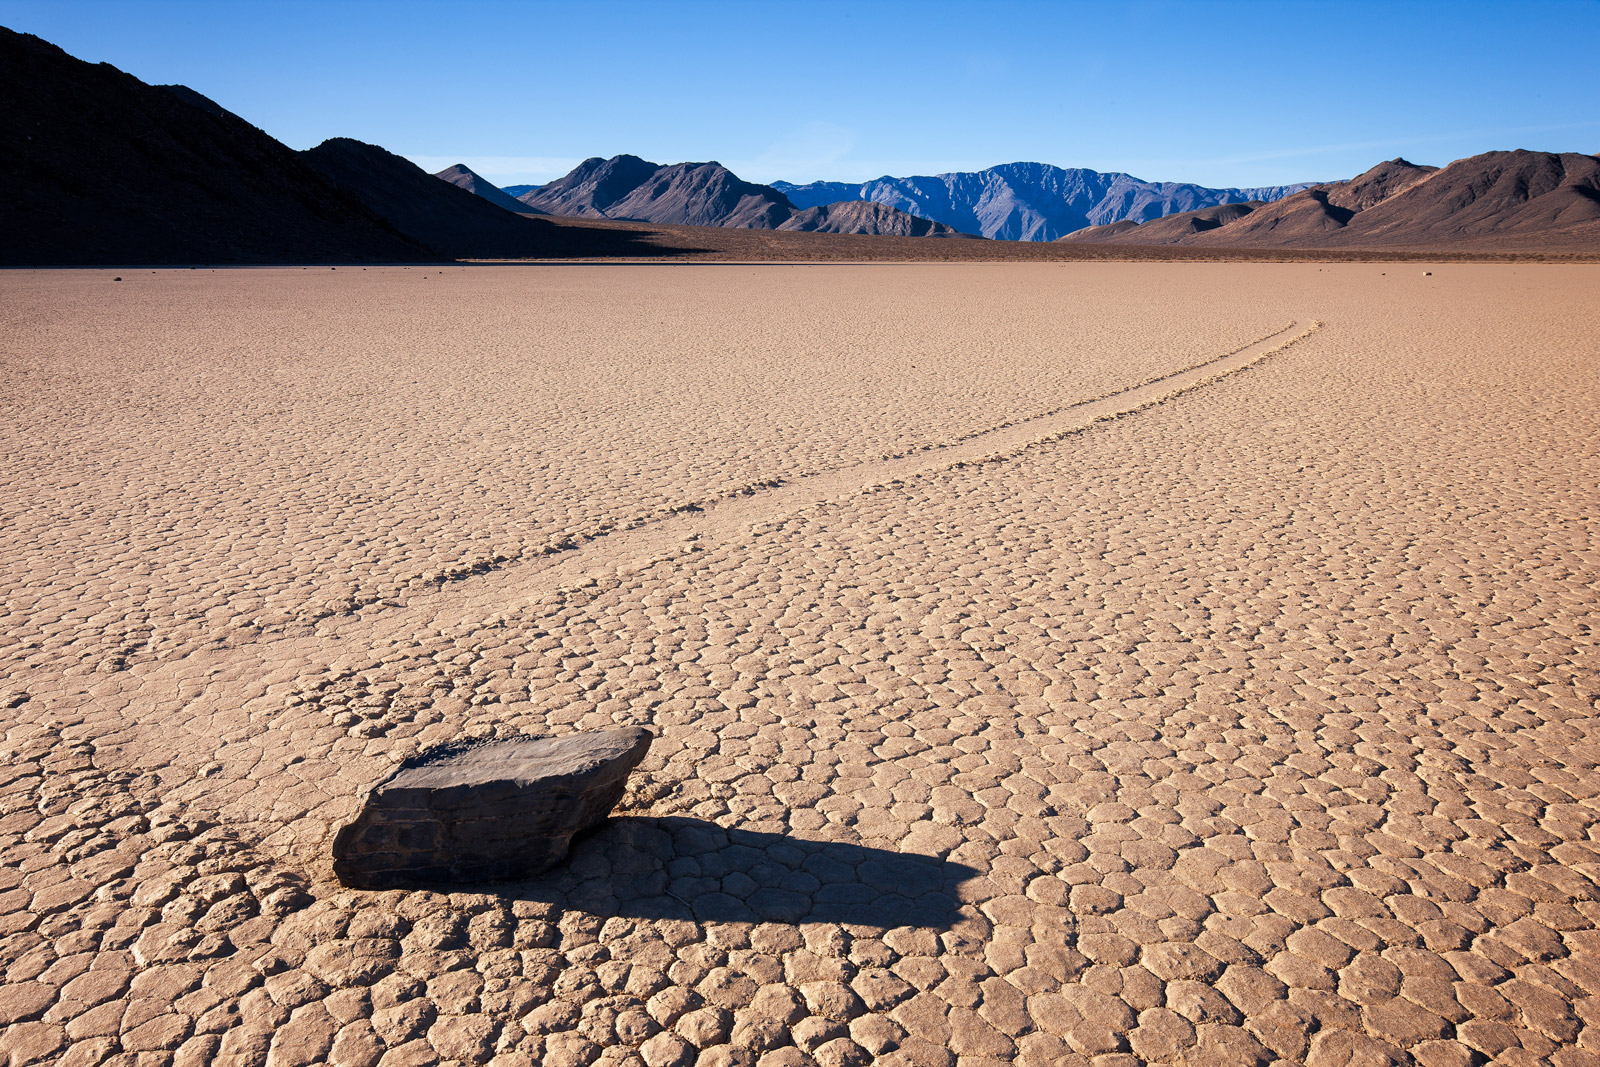 """A Limited Edition, Fine Art photograph the left turn by one of the """"moving rocks"""" at The Racetrack in Death Valley National Park..."""